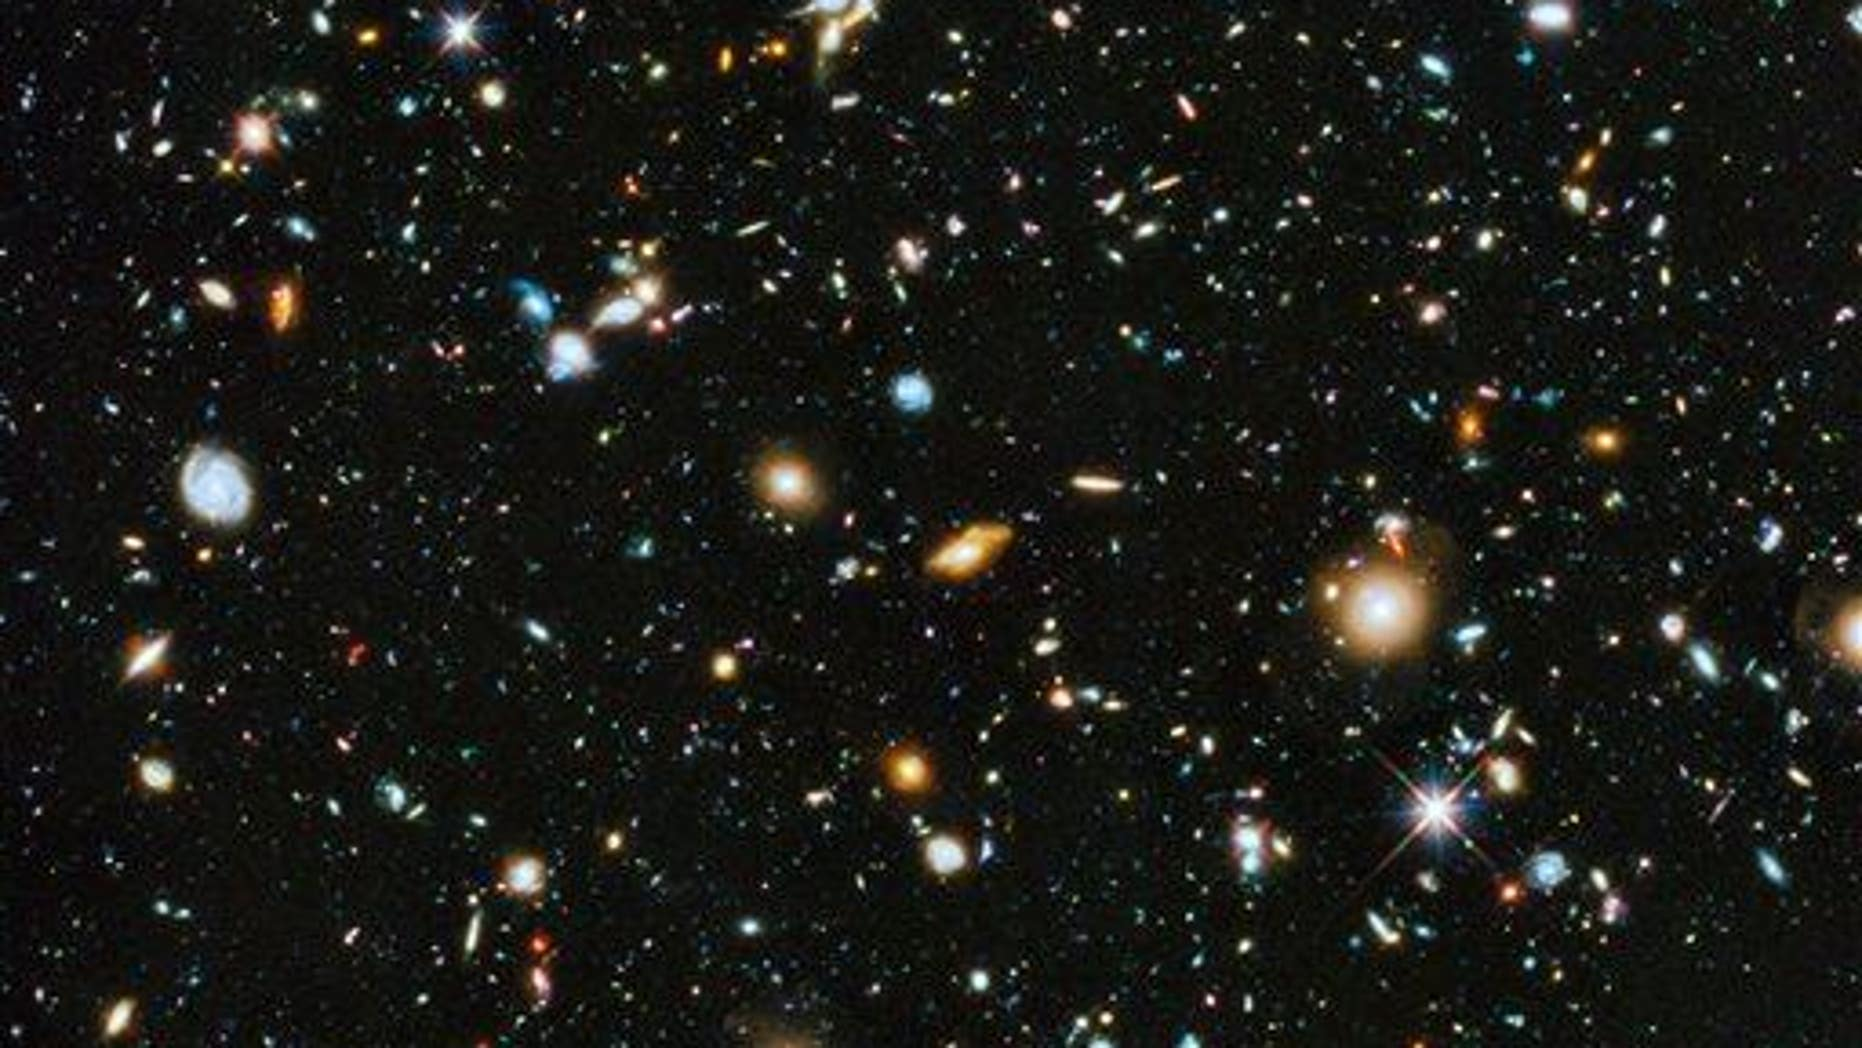 There are around 10,000 multi-colored galaxies in this Hubble Space Telescope image.